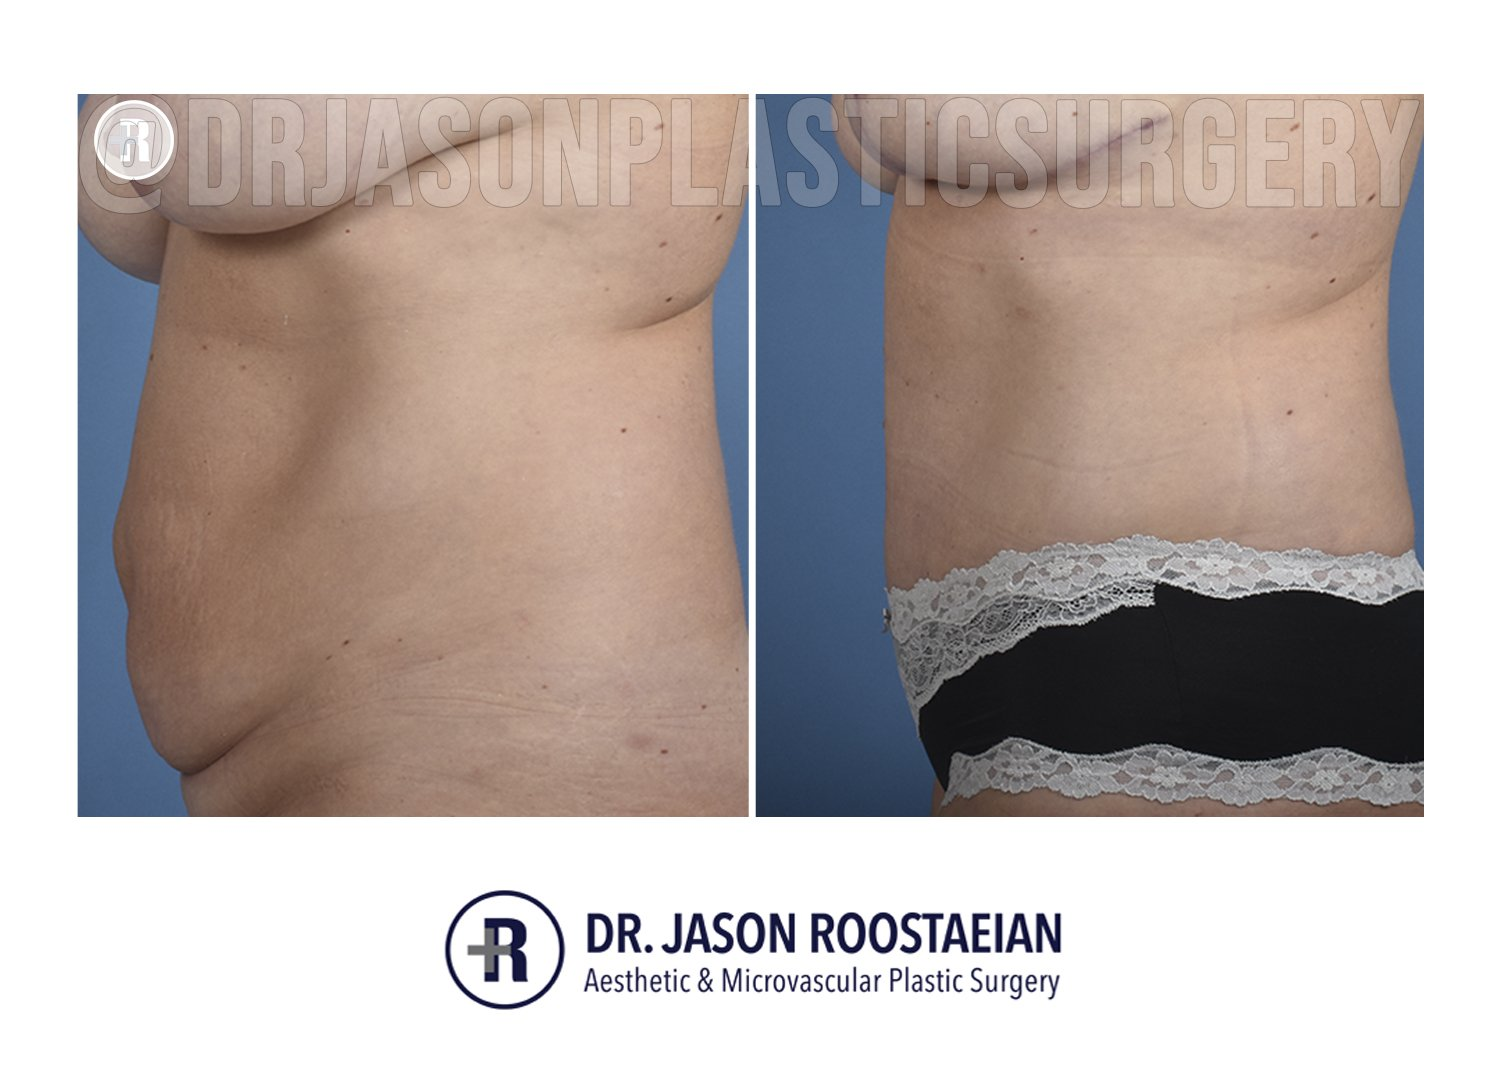 A before and after left lateral view of Dr. Jason Roostaeian's natural looking tummy tuck female patient 040221